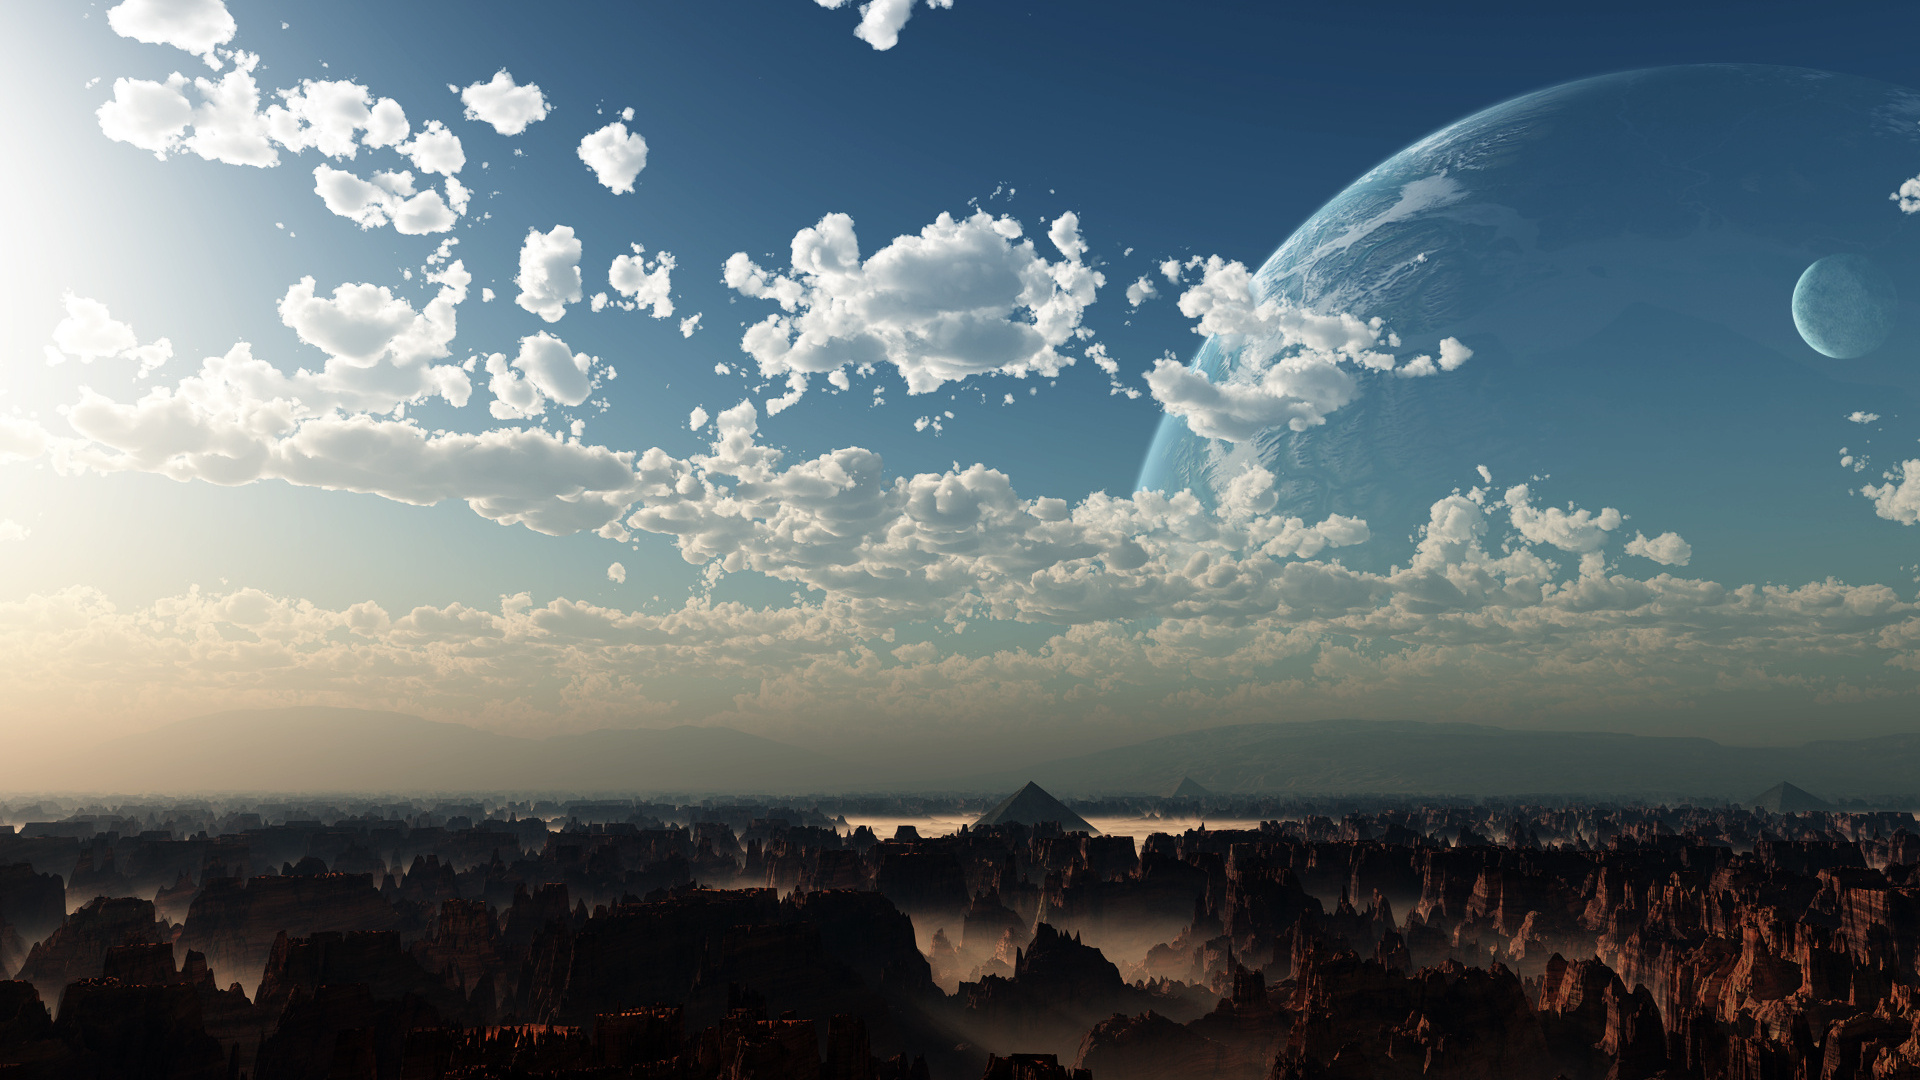 extrasolar planets wallpaper - photo #34